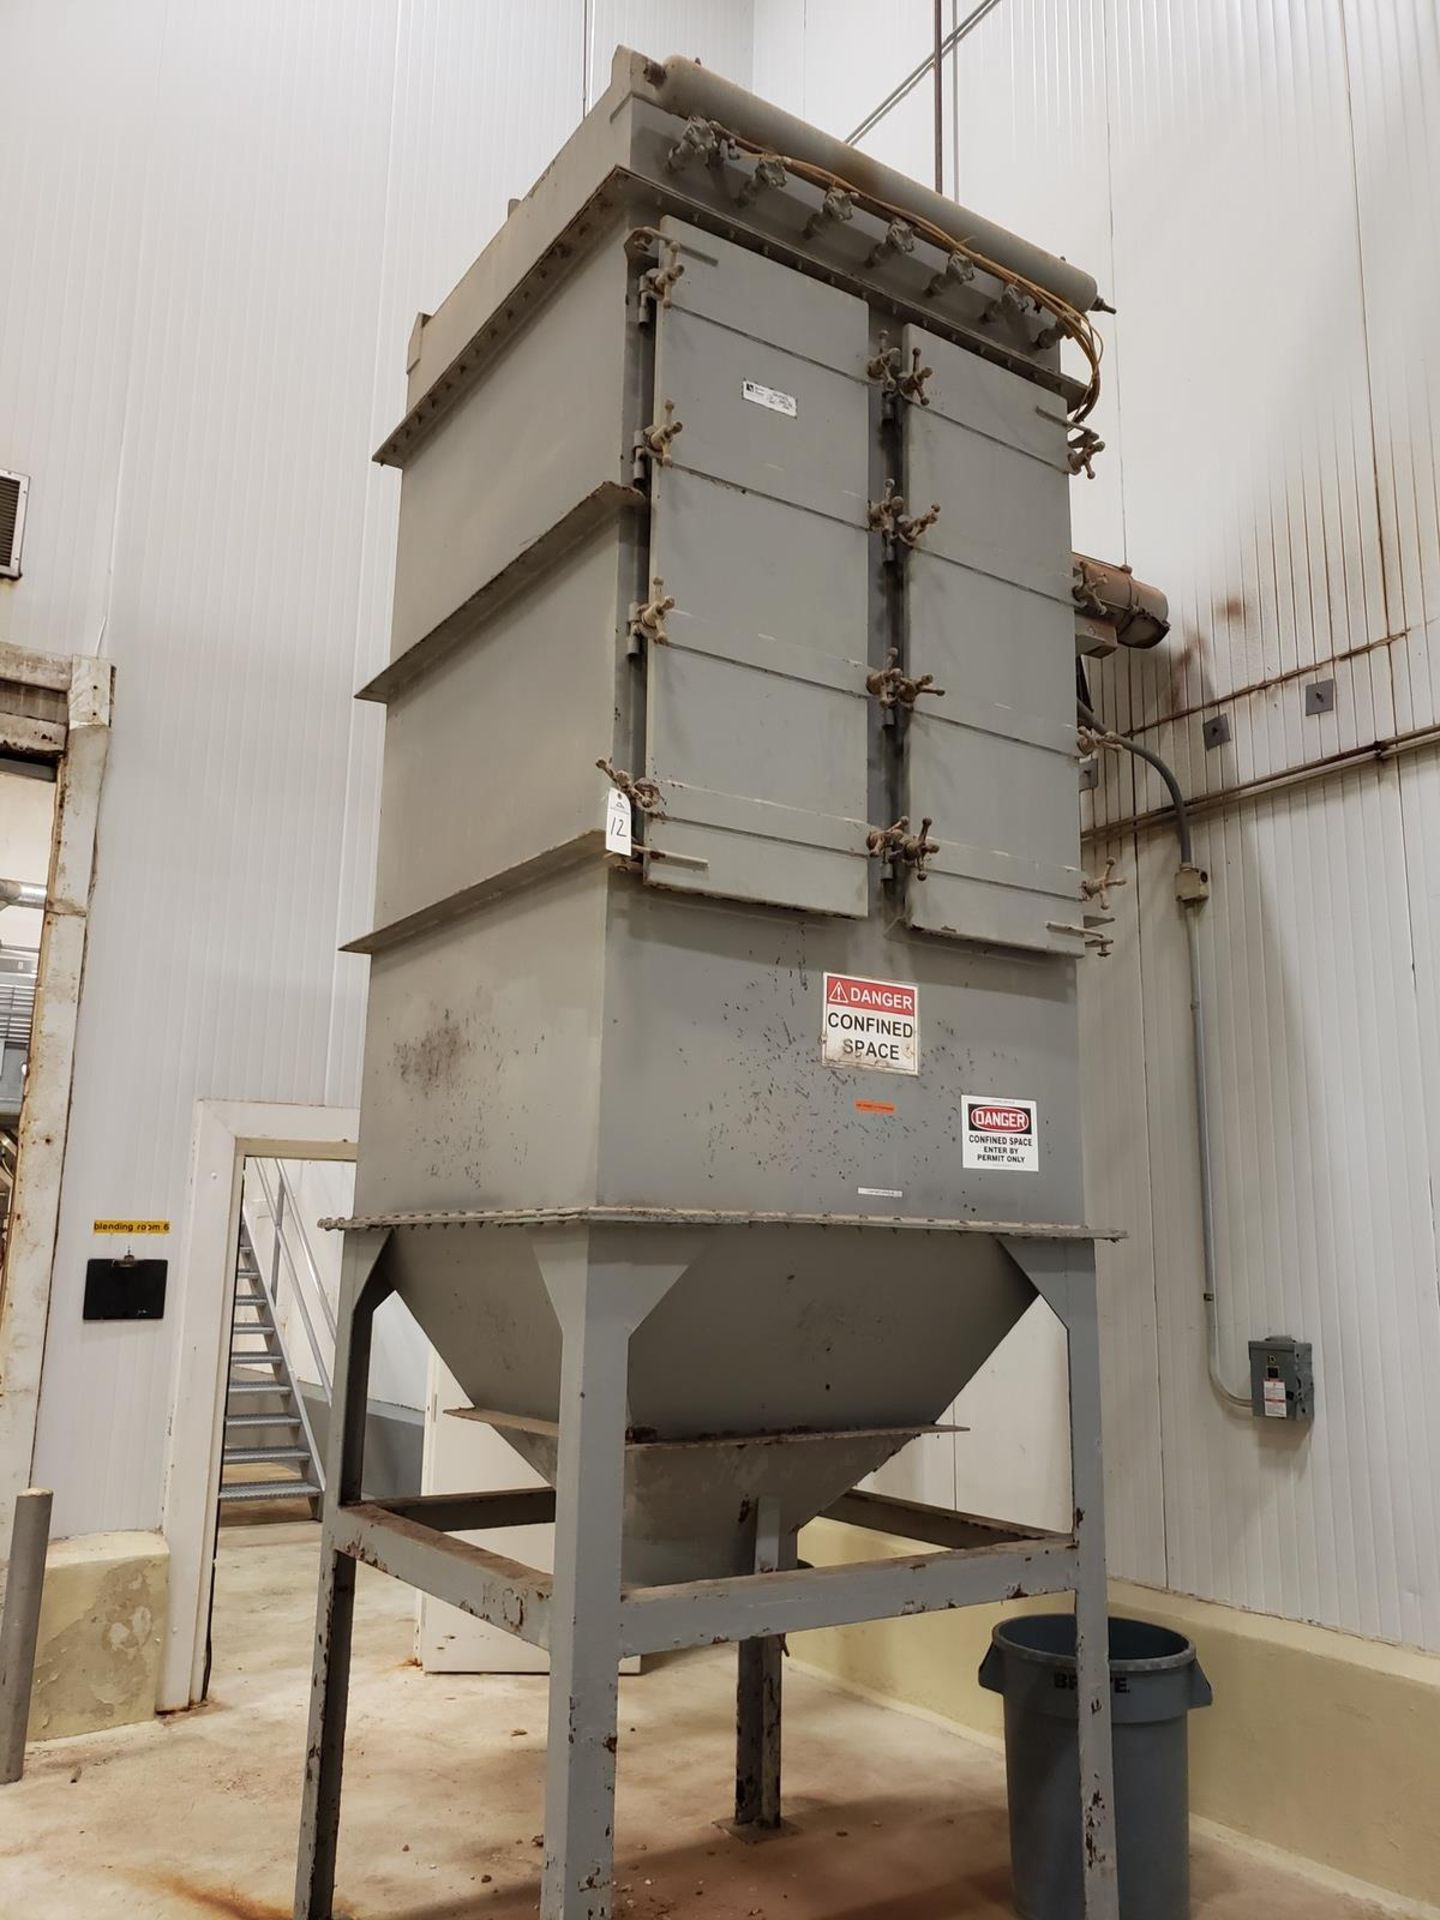 Lot 12 - Beckert & Hiester Pulsation Cleaned Bag House, M# 7-490-49-84S-3G - Loc: NJ | Rig Fee: $500